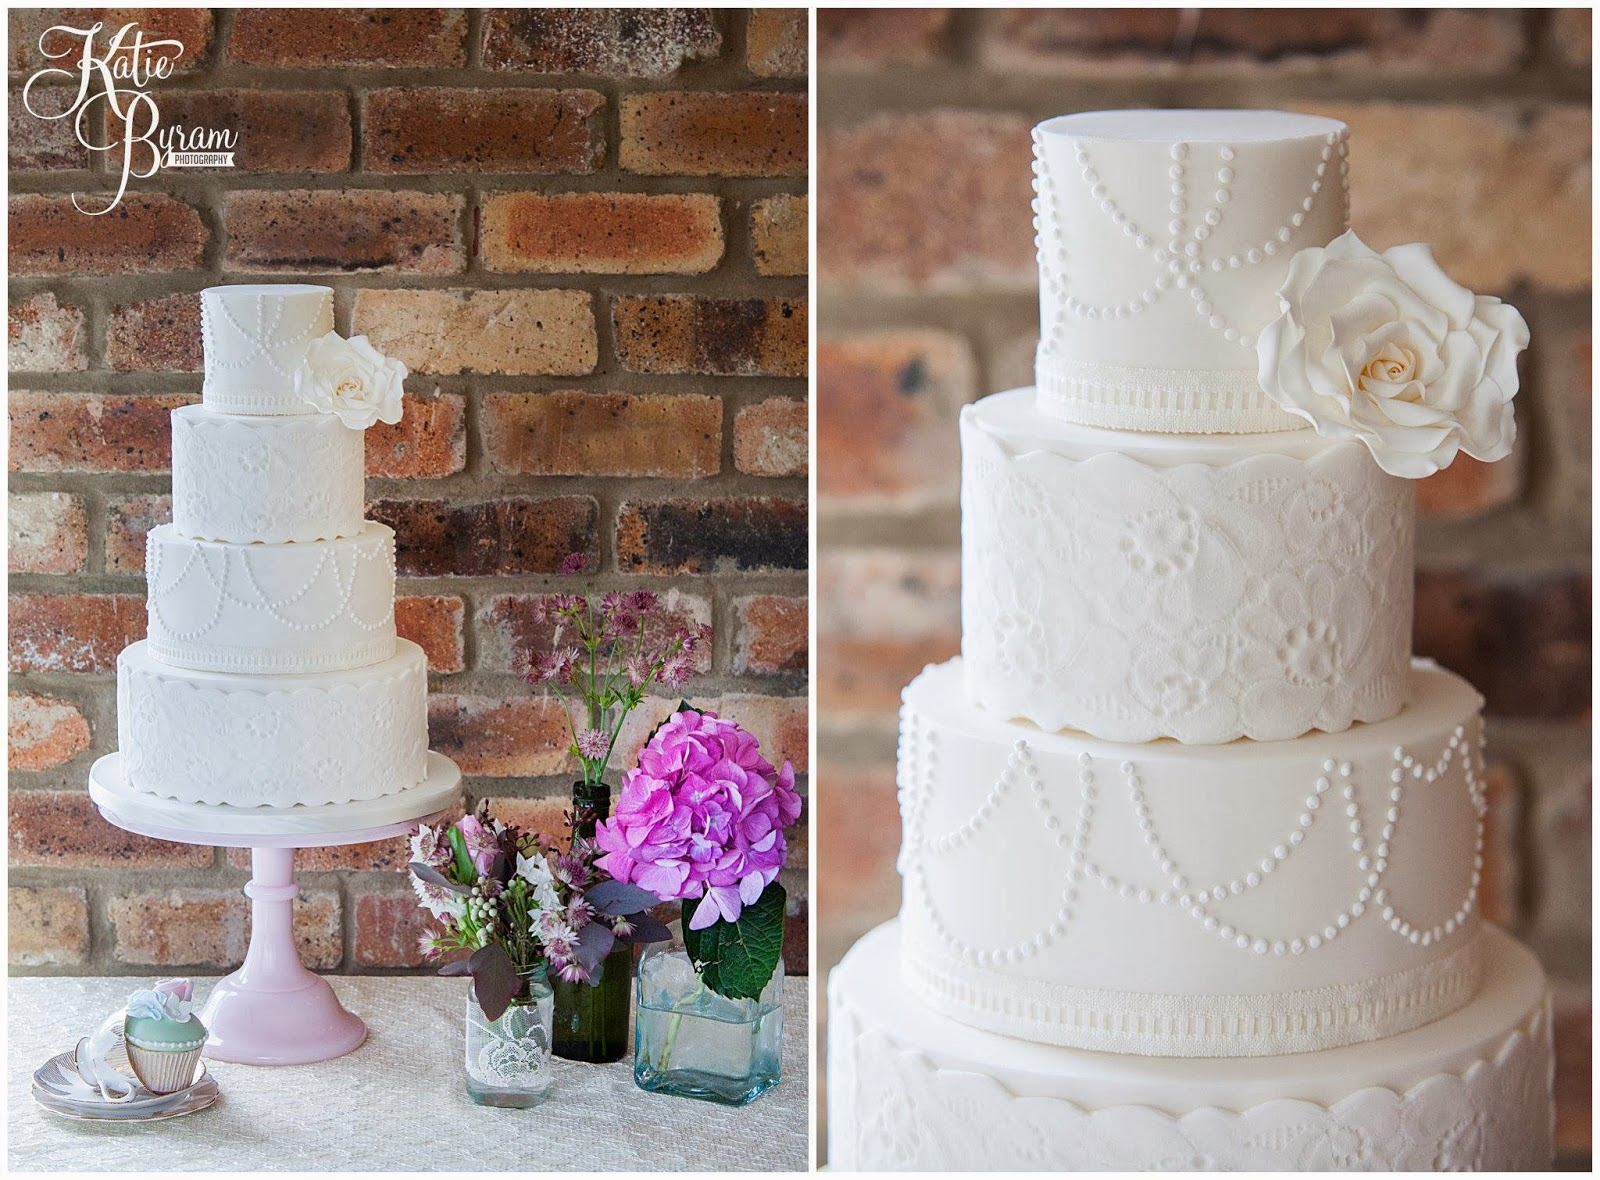 the master cakesmith, vintage wedding cake, wedding cakes newcastle, ellingham hall wedding, floral wedding cake, bels flowers, emma bunting, katie byram photography, the finishing touch company, newcastle wedding photographer, ellingham hall wedding photos